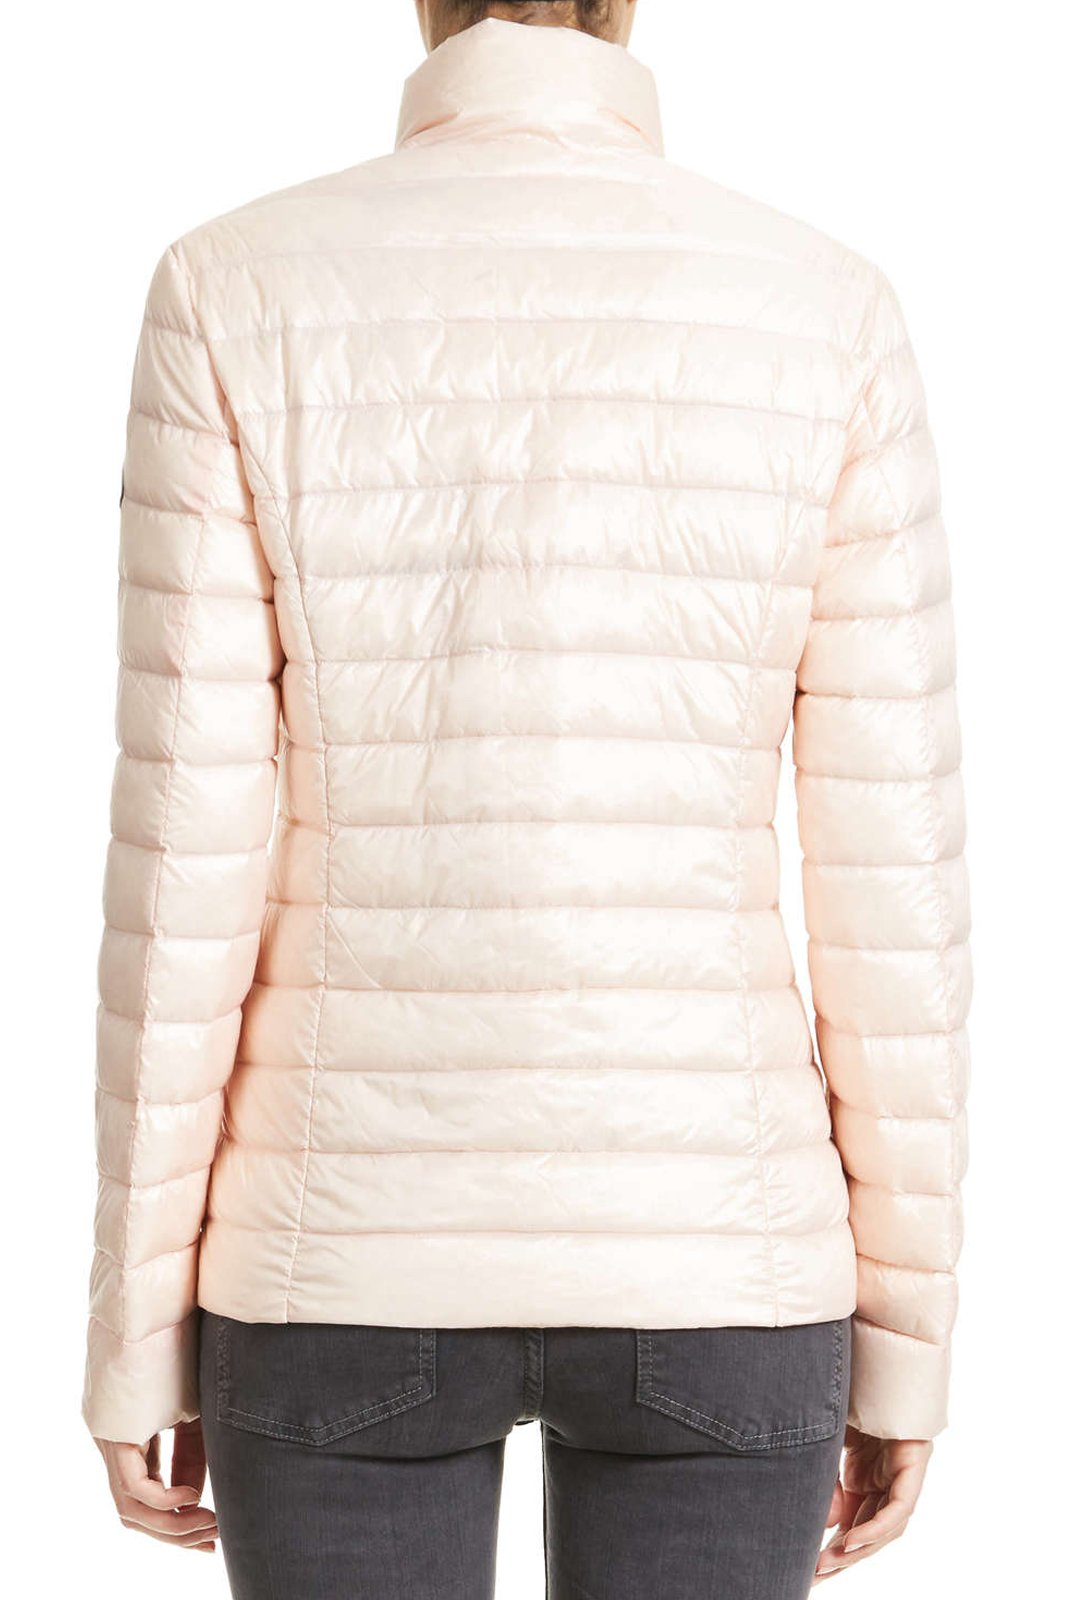 Blouson  Just over the top CHA 426 ROSE PALE